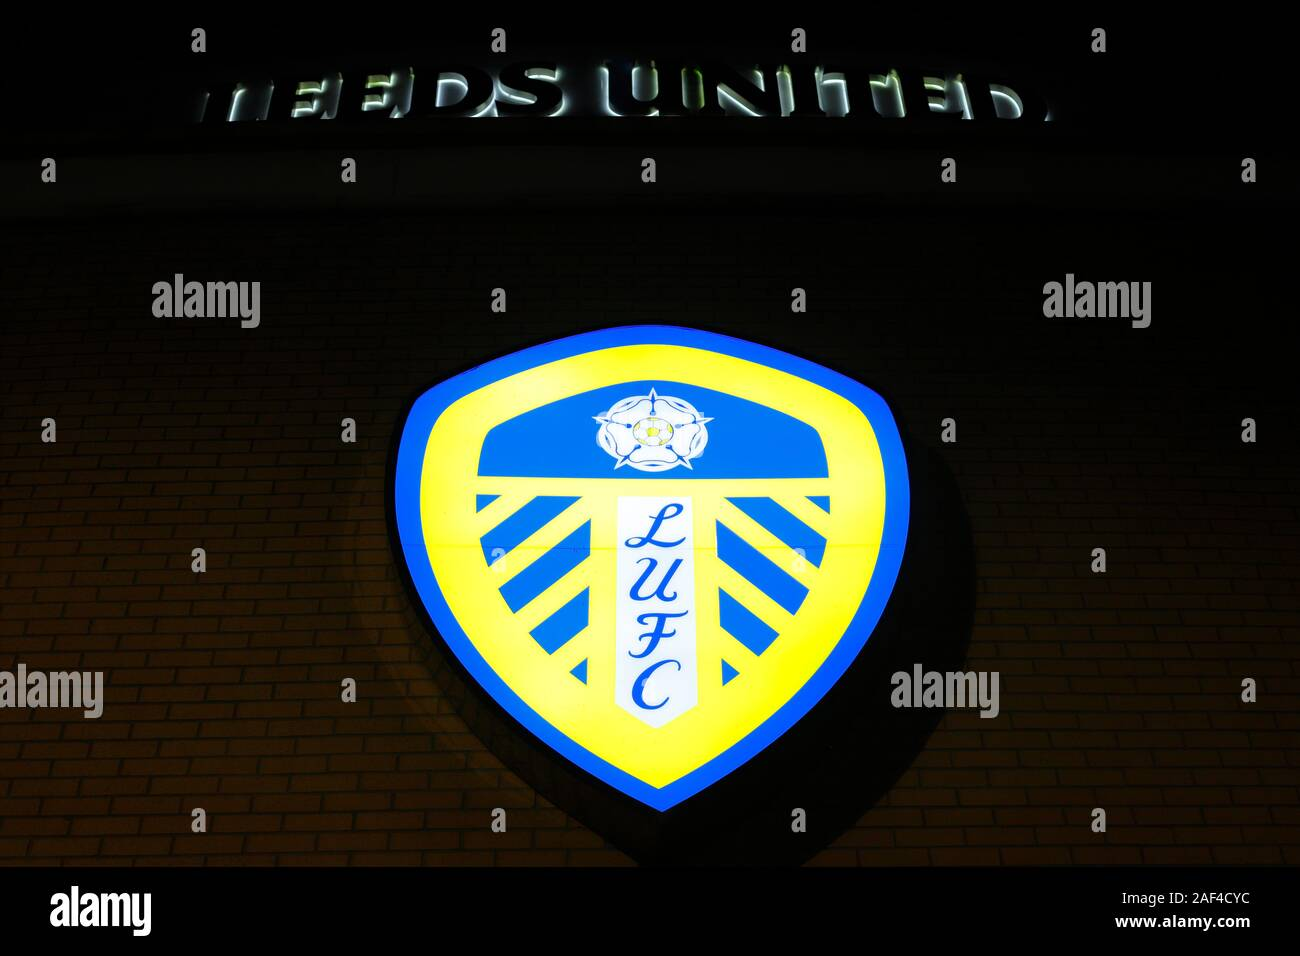 Football Logo High Resolution Stock Photography And Images Alamy